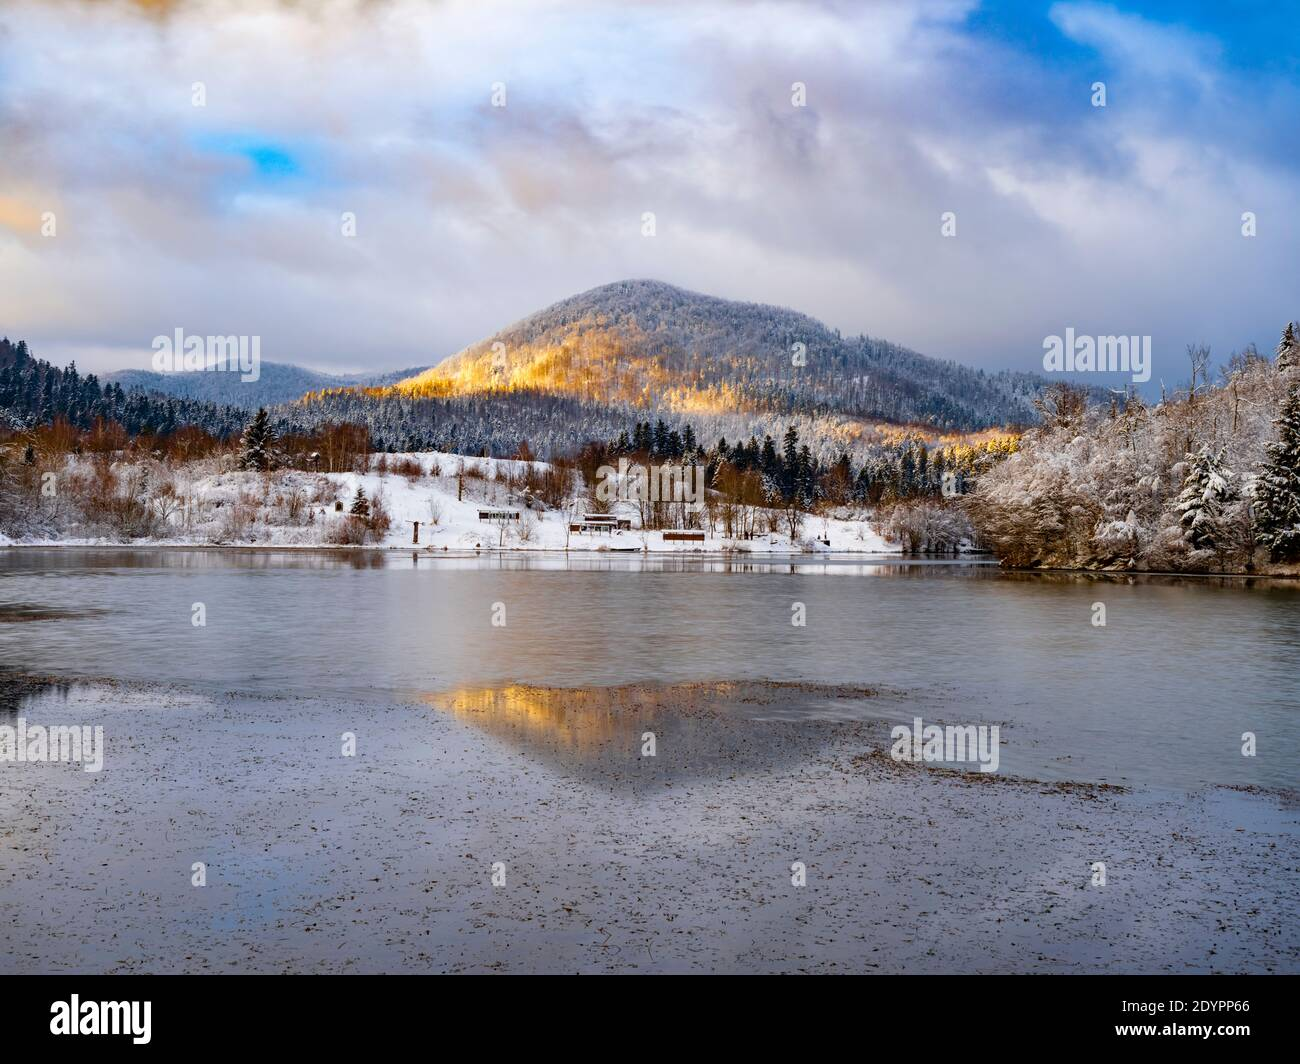 Winter show landscape scenery scenic panorama sunset patch of warm light passing through clouds lake Mrzla vodica in Croatia Europe Stock Photo